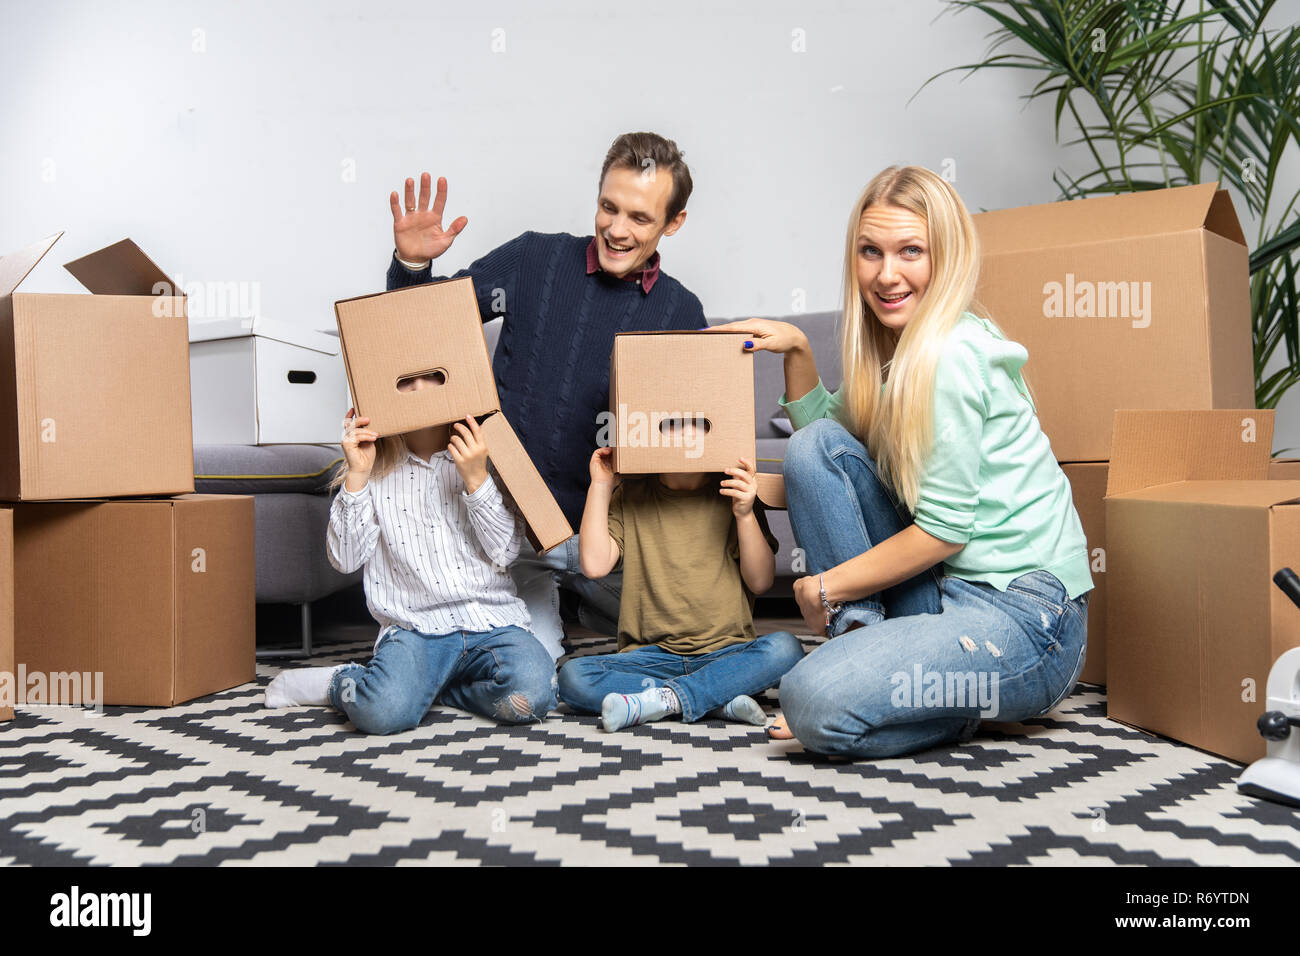 Image of young married couple with indulging children sitting on floor among cardboard boxes in new apartment - Stock Image